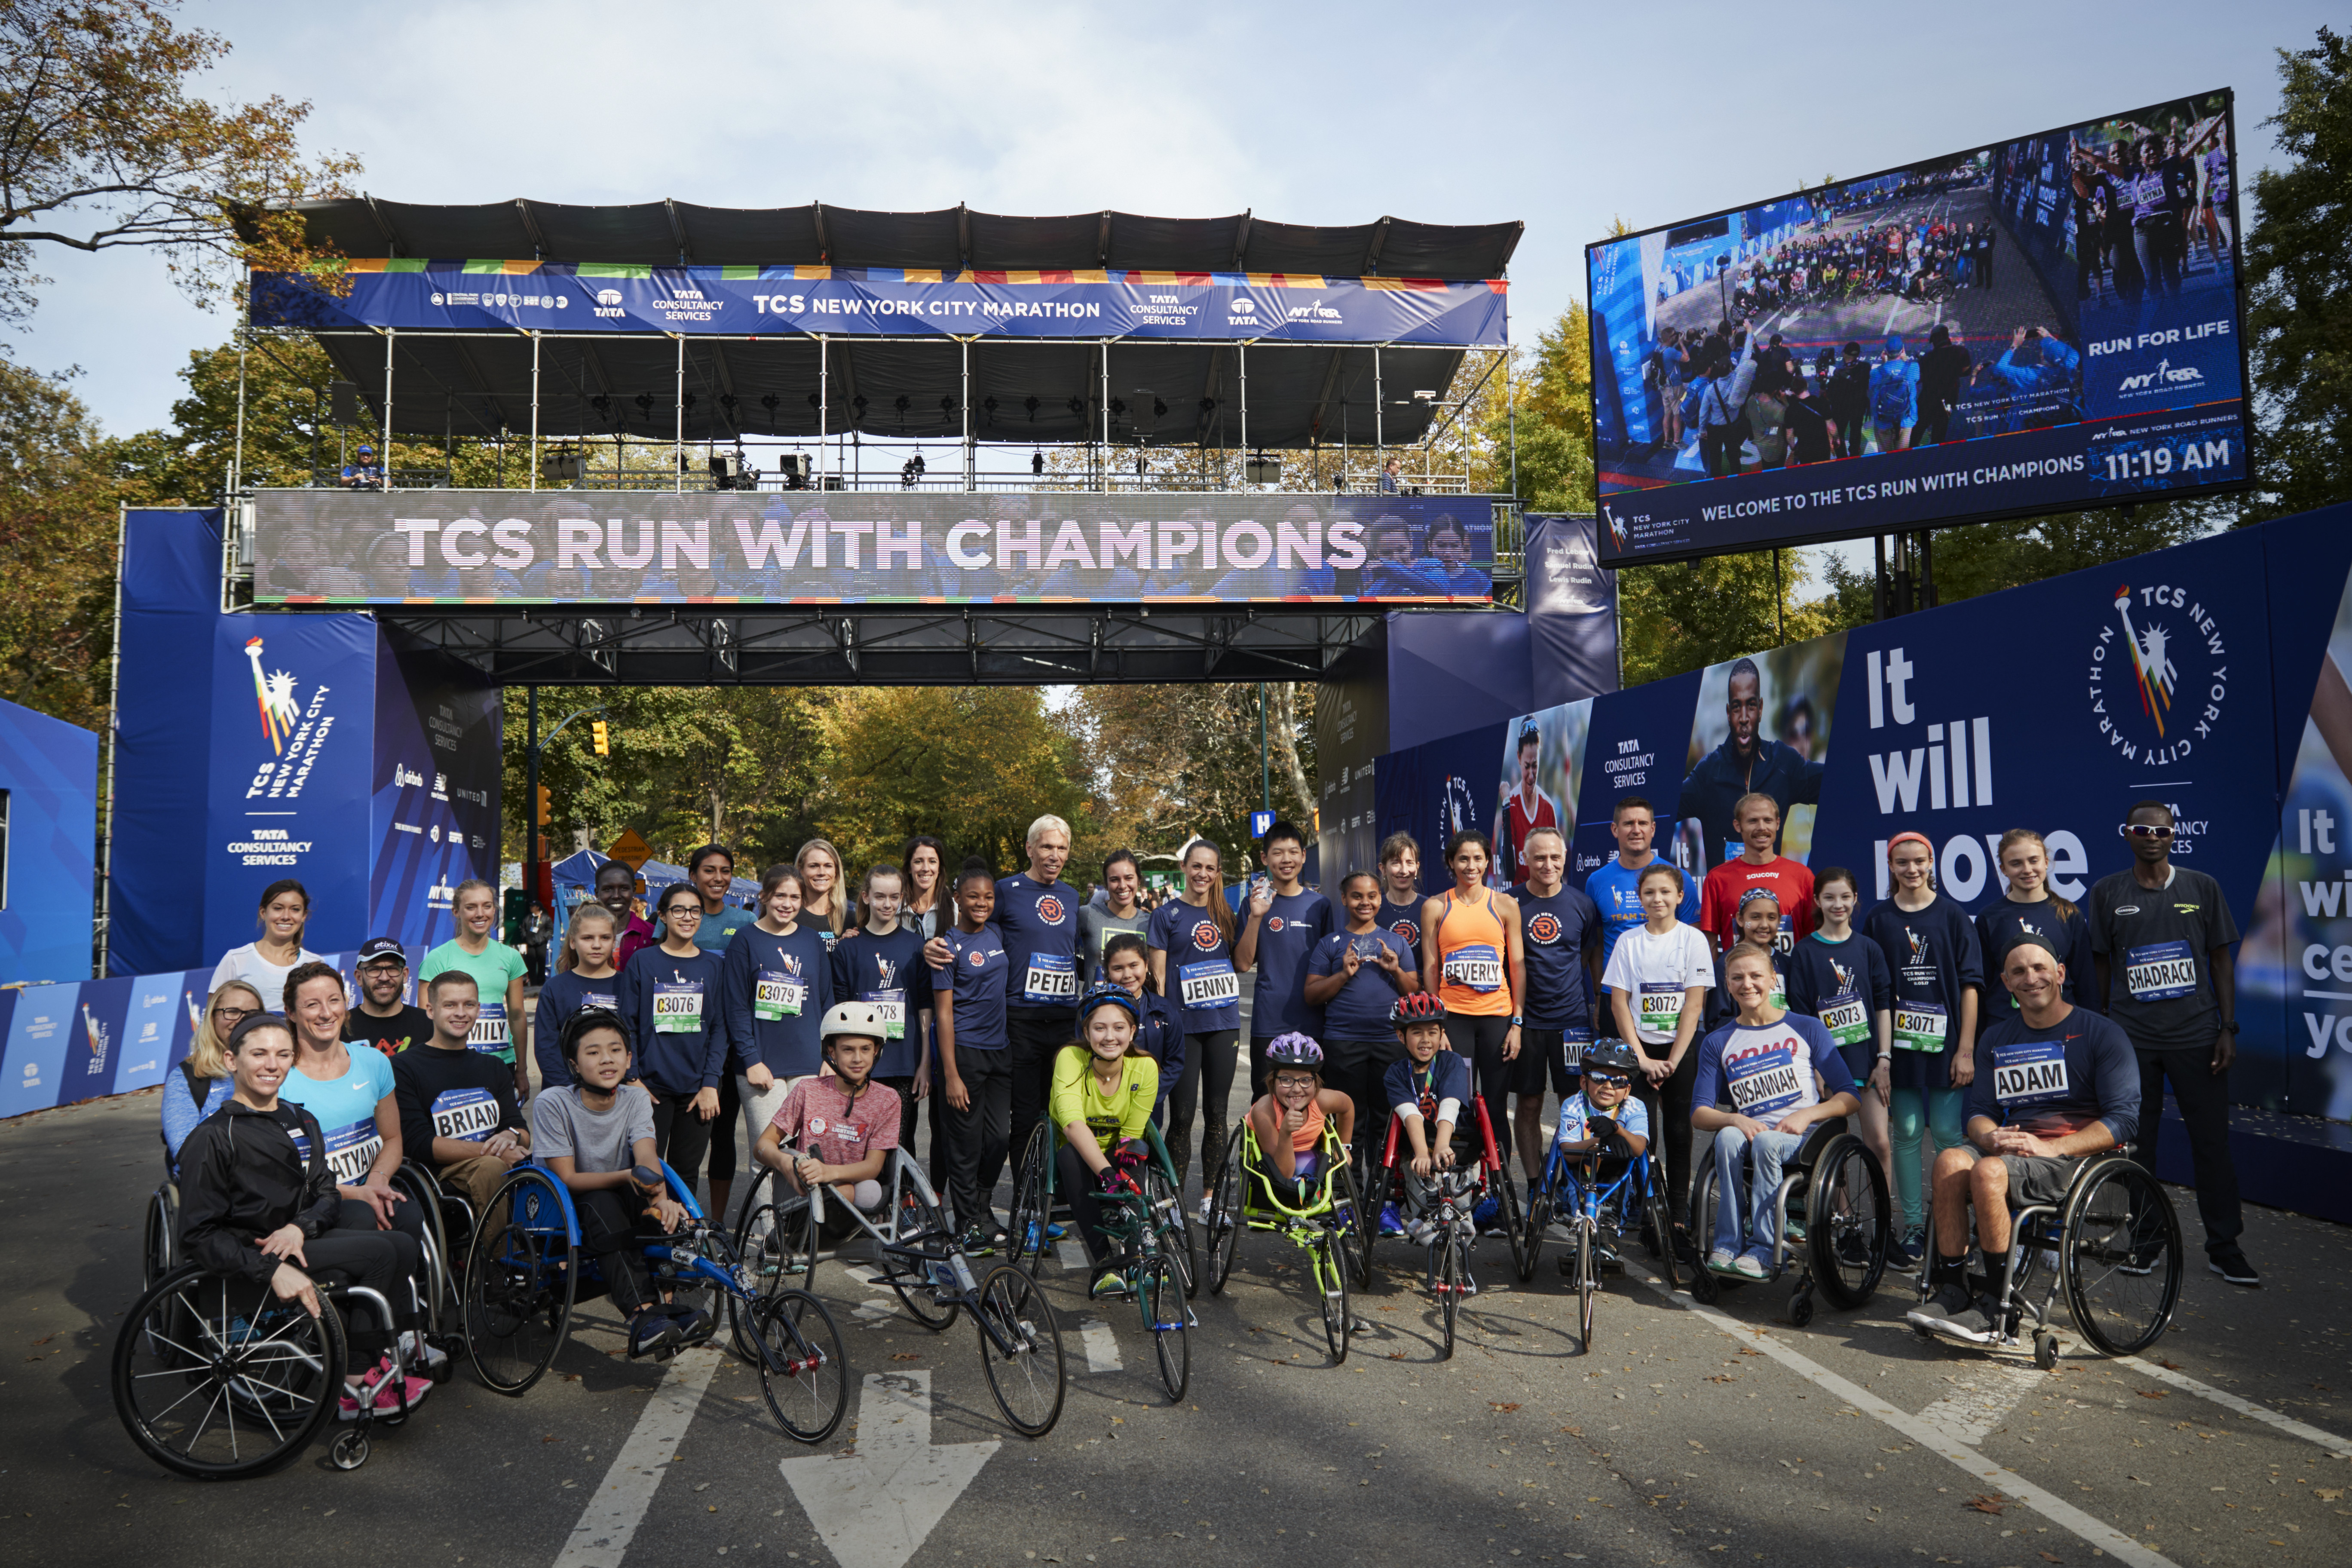 Group photo of the 2017 TCS Run with Champions